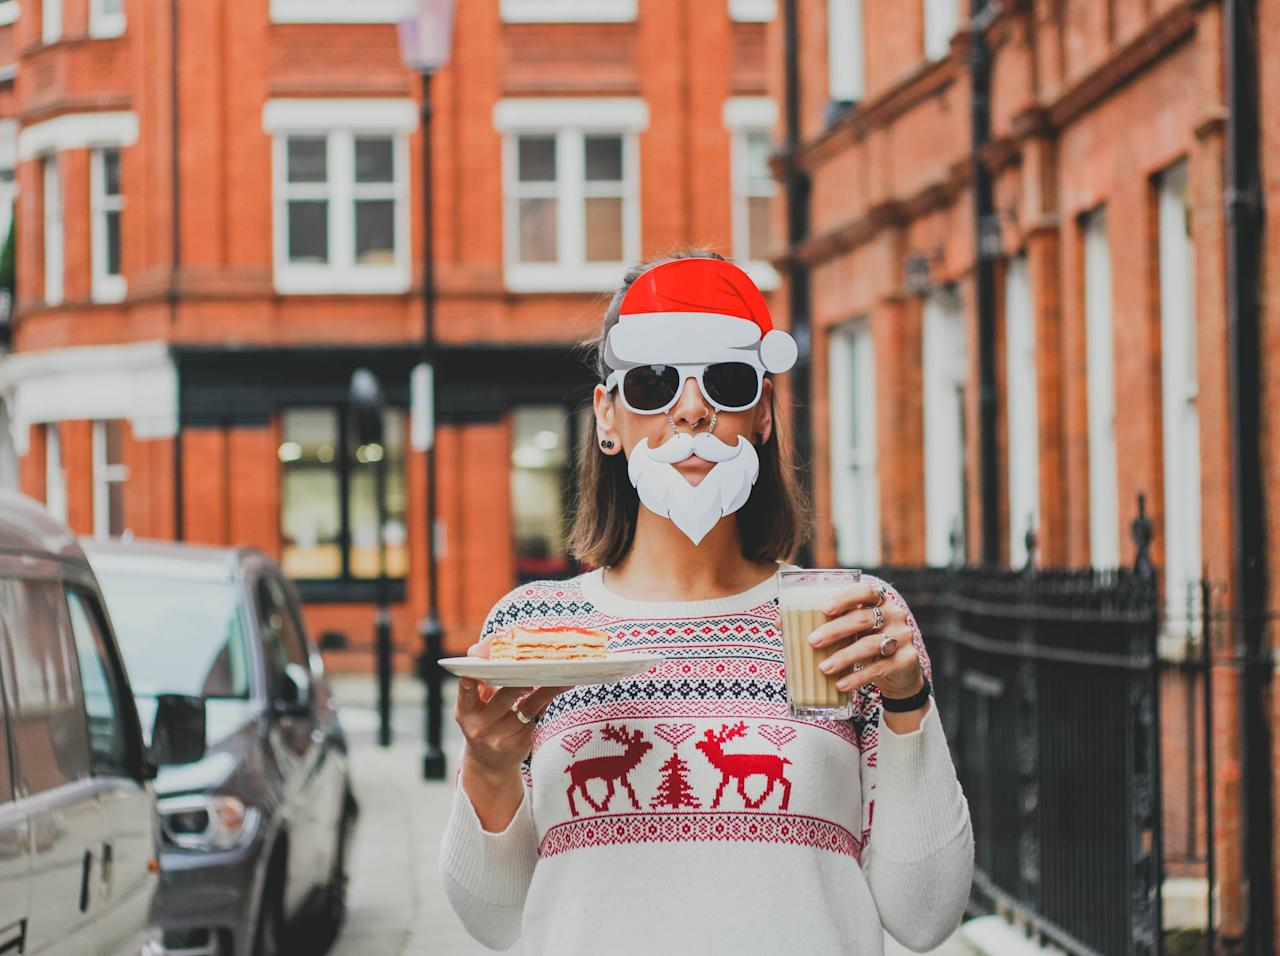 """<p>Who doesn't love a good themed party? Your annual Ugly Sweater Christmas Party will be everyone's favorite when you add a strict dress code of the <a href=""""https://www.popsugar.com/fashion/Ugly-Christmas-Sweaters-32410225"""" class=""""ga-track"""" data-ga-category=""""Related"""" data-ga-label=""""http://www.popsugar.com/fashion/Ugly-Christmas-Sweaters-32410225"""" data-ga-action=""""In-Line Links"""">ugliest sweaters</a> your guests can find. Make it fun by awarding a prize to the ugliest sweater.</p> <p>And if you're not much of a partier, host it on a smaller scale with just your closest friends. Make it a movie night with hot cocoa and junk food!</p>"""